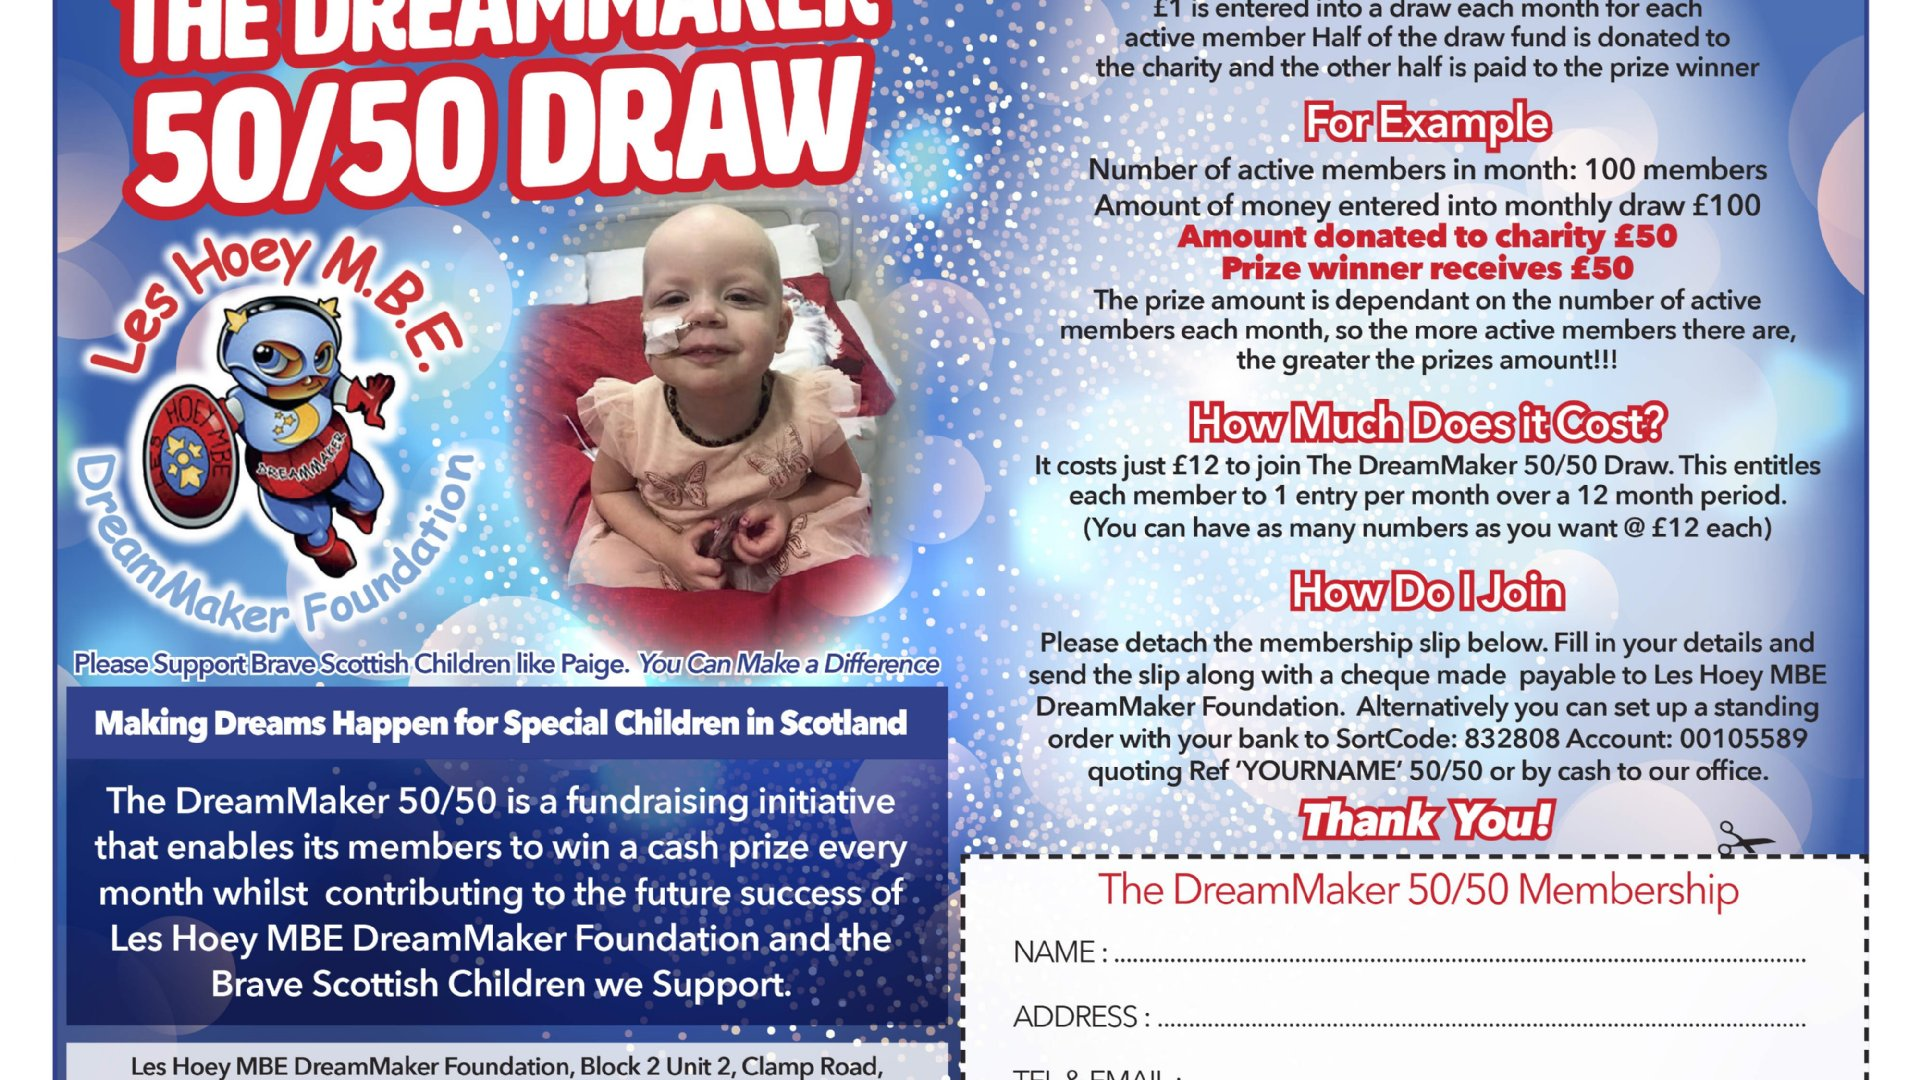 JOIN OUR 50/50 MONTHLY DRAW FOR ONLY £1...